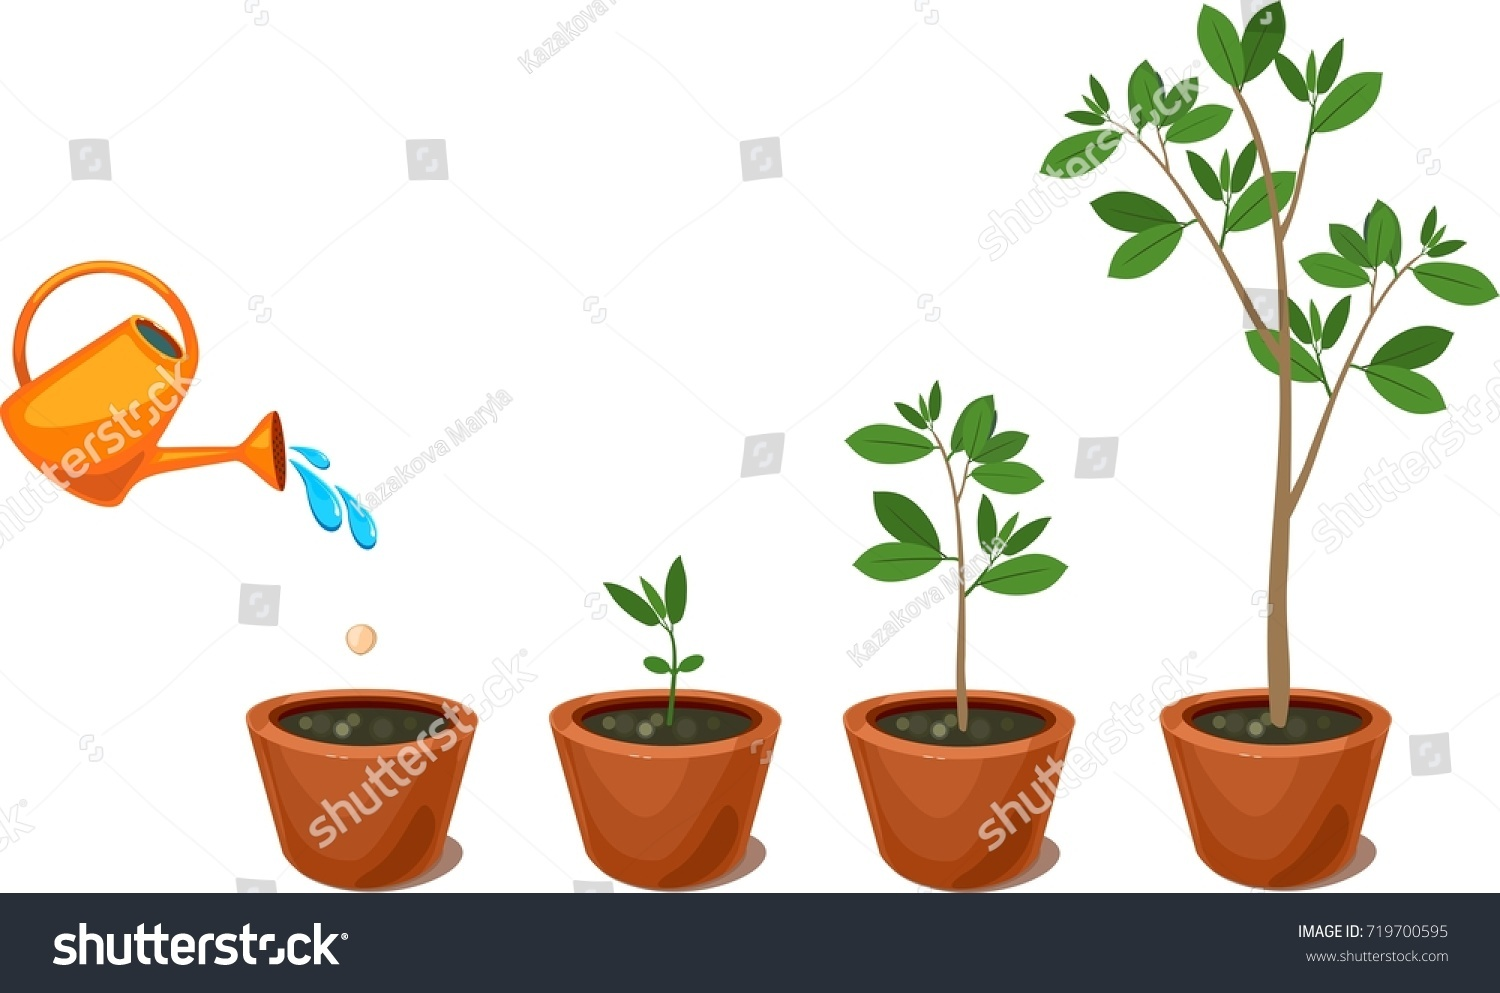 Stages Growth Tree Seed Watering Plants Stock Vector